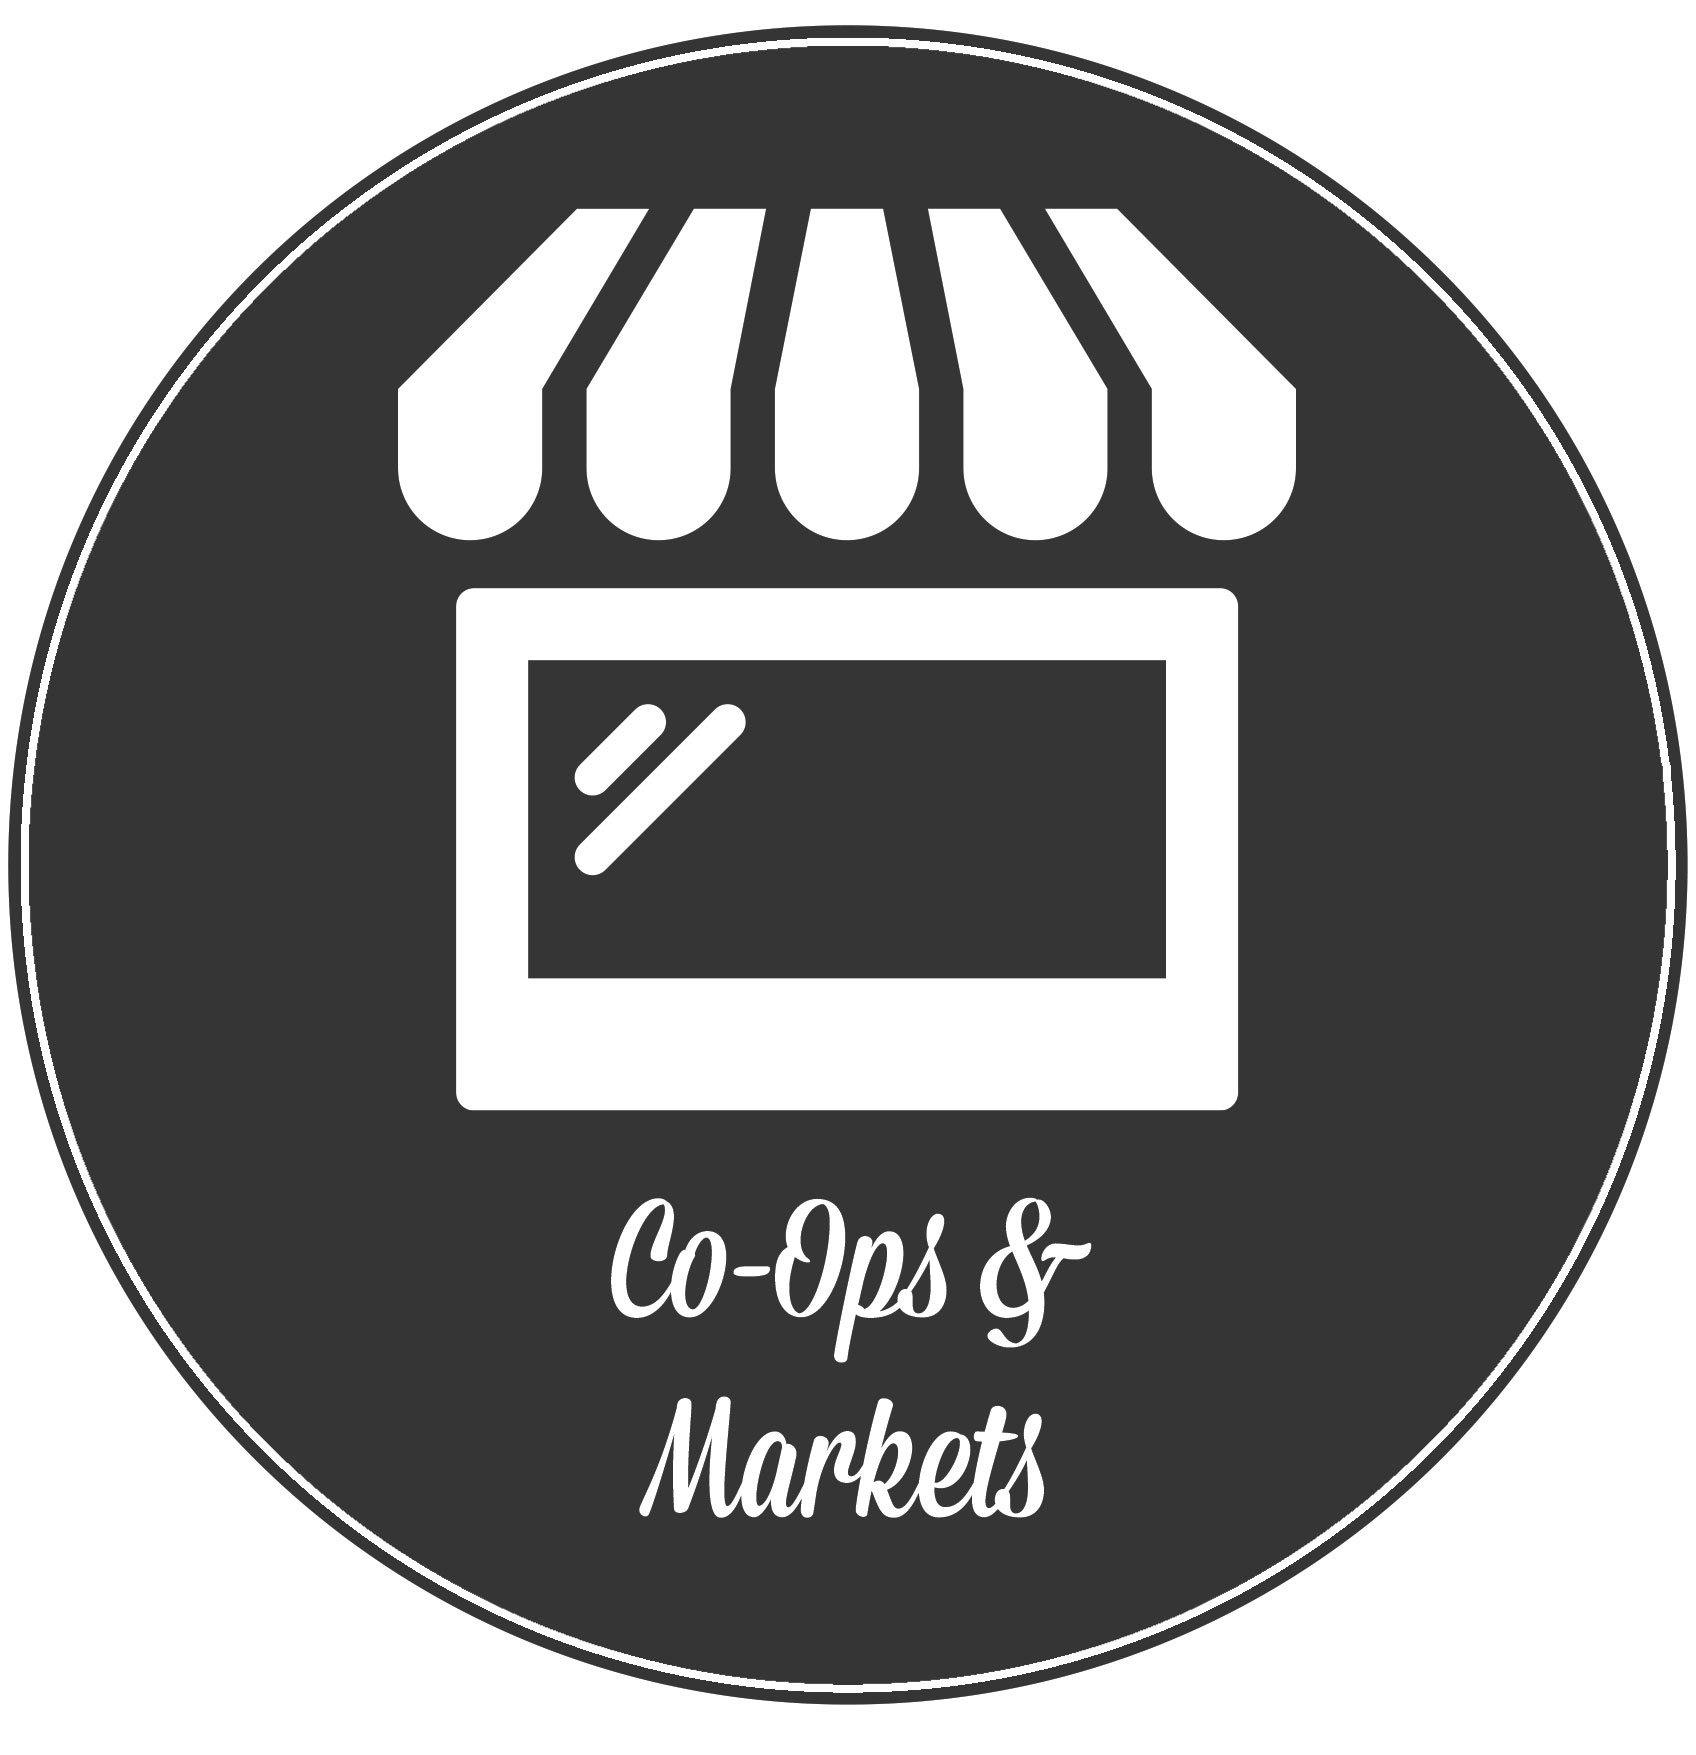 Co-ops & Markets